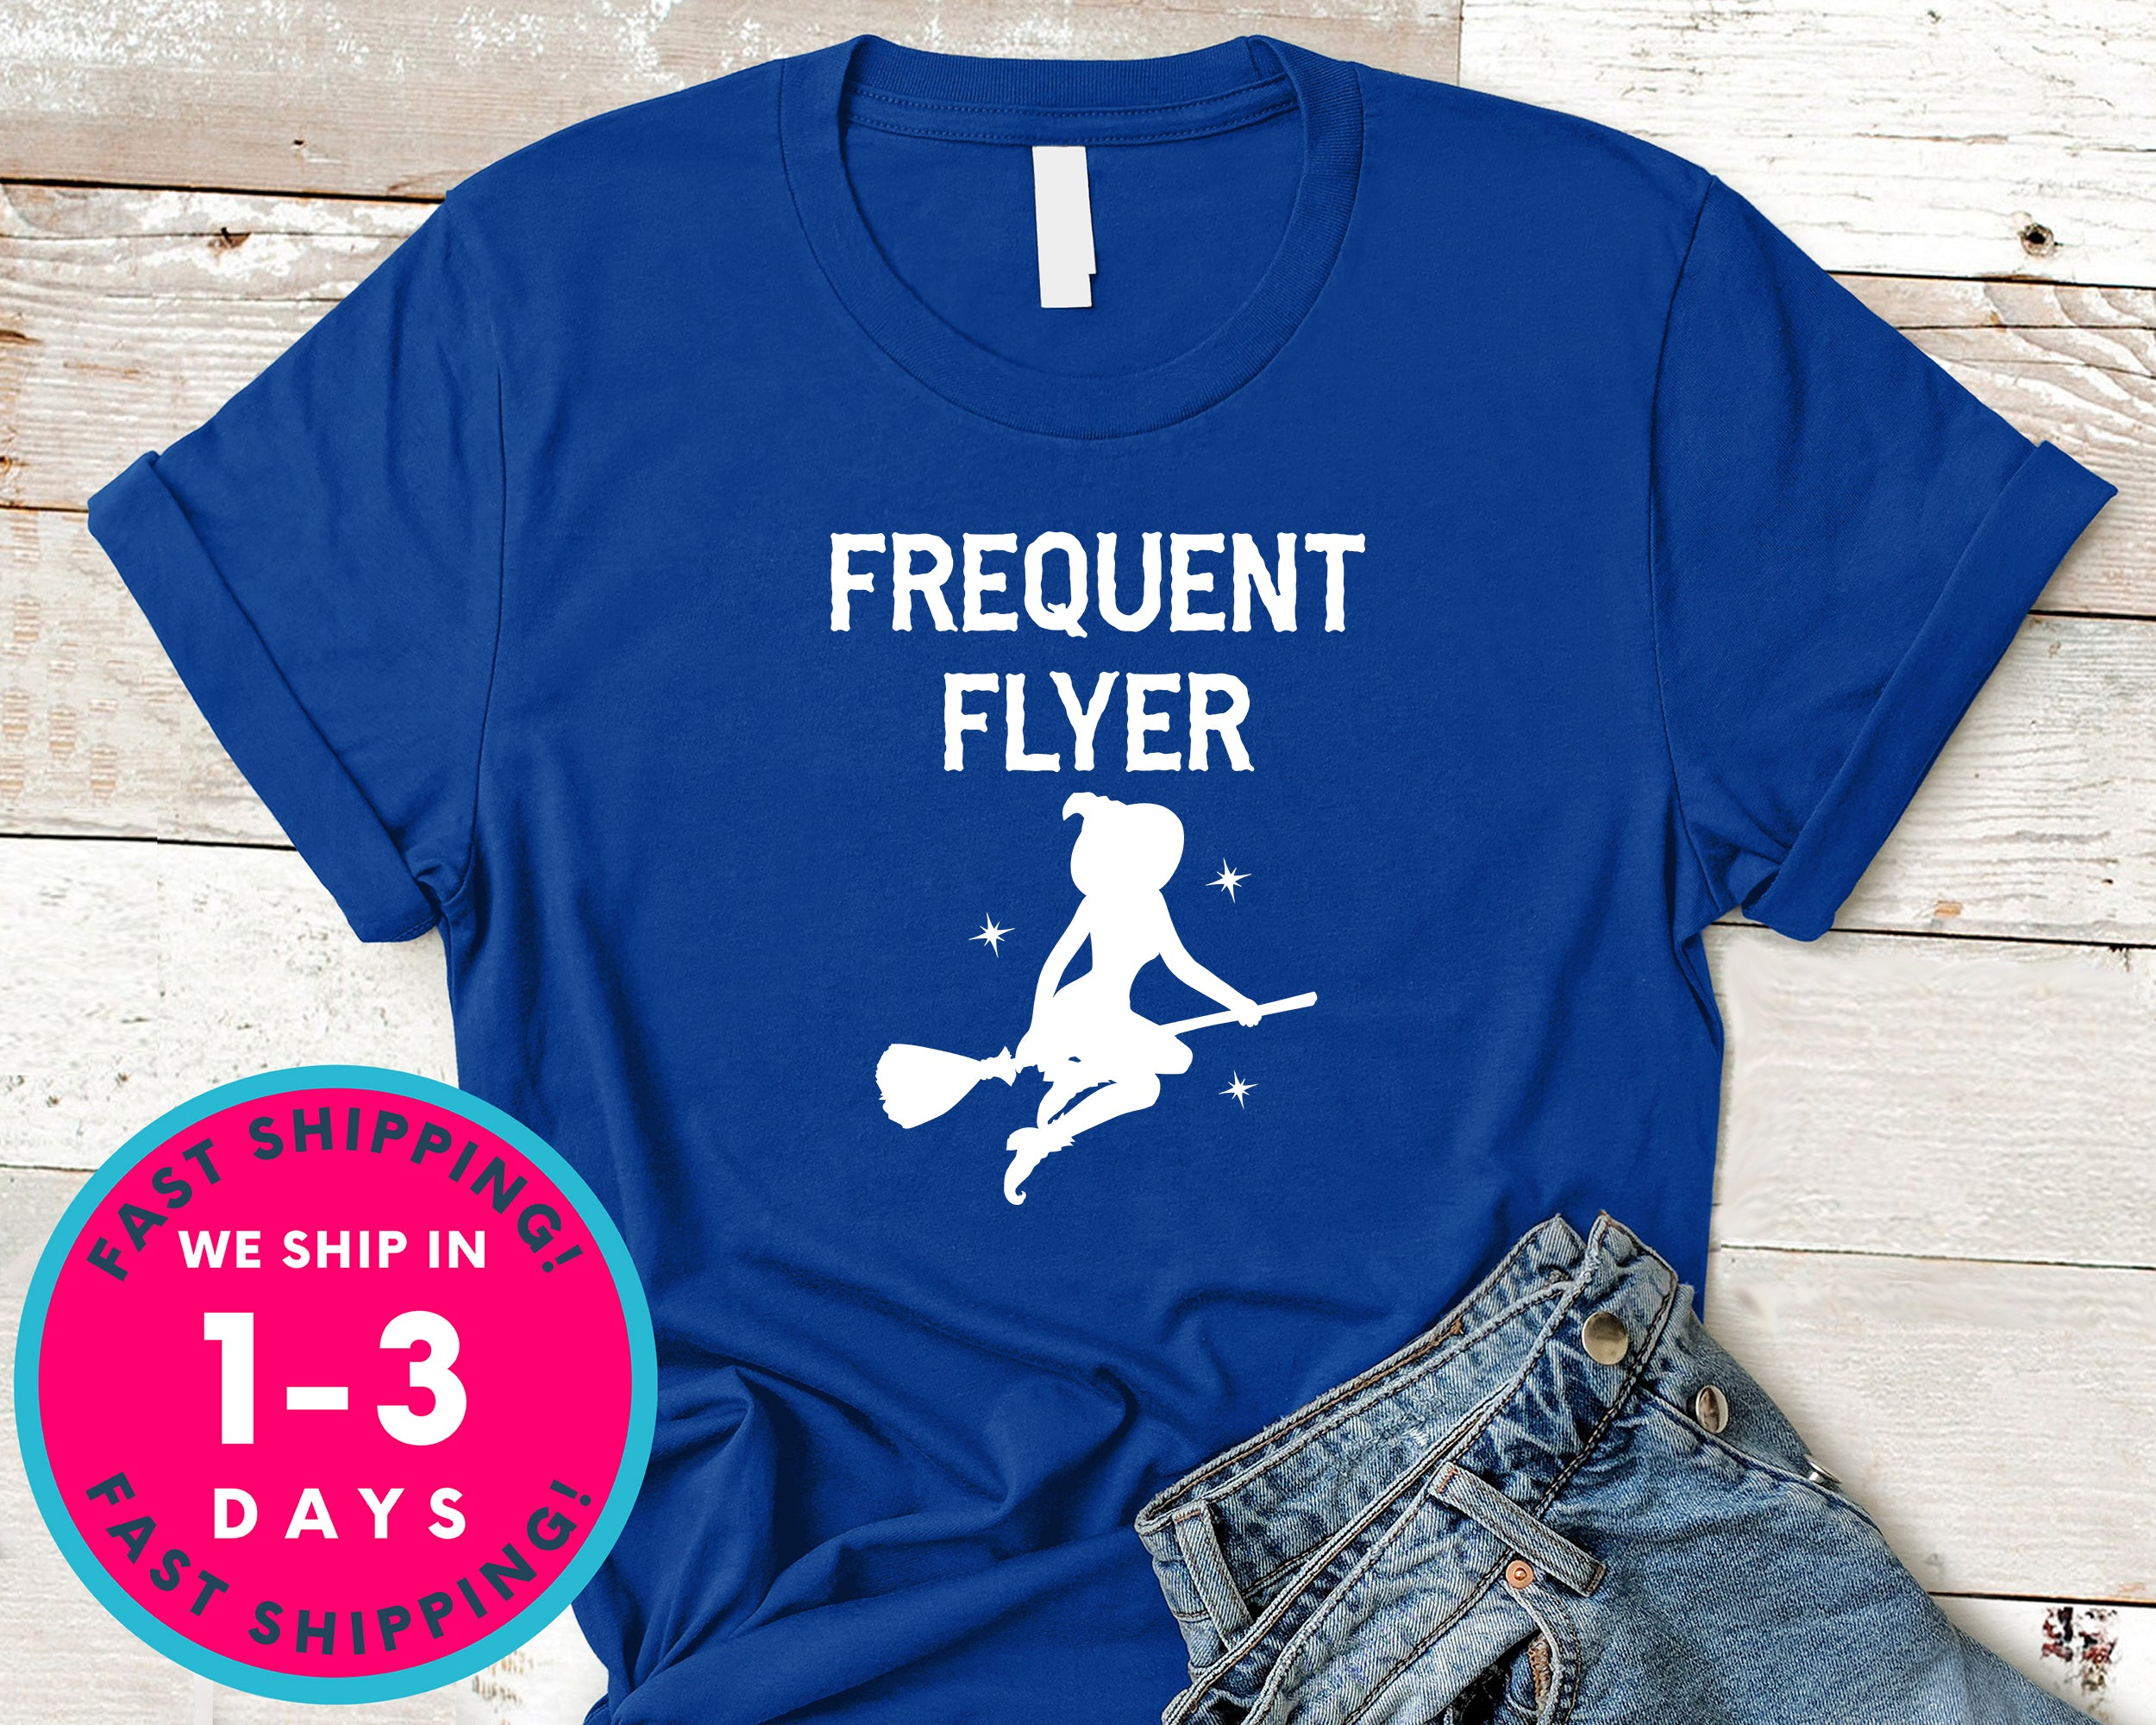 Frequent Flyer Witch Broom T-Shirt - Halloween Horror Scary Shirt